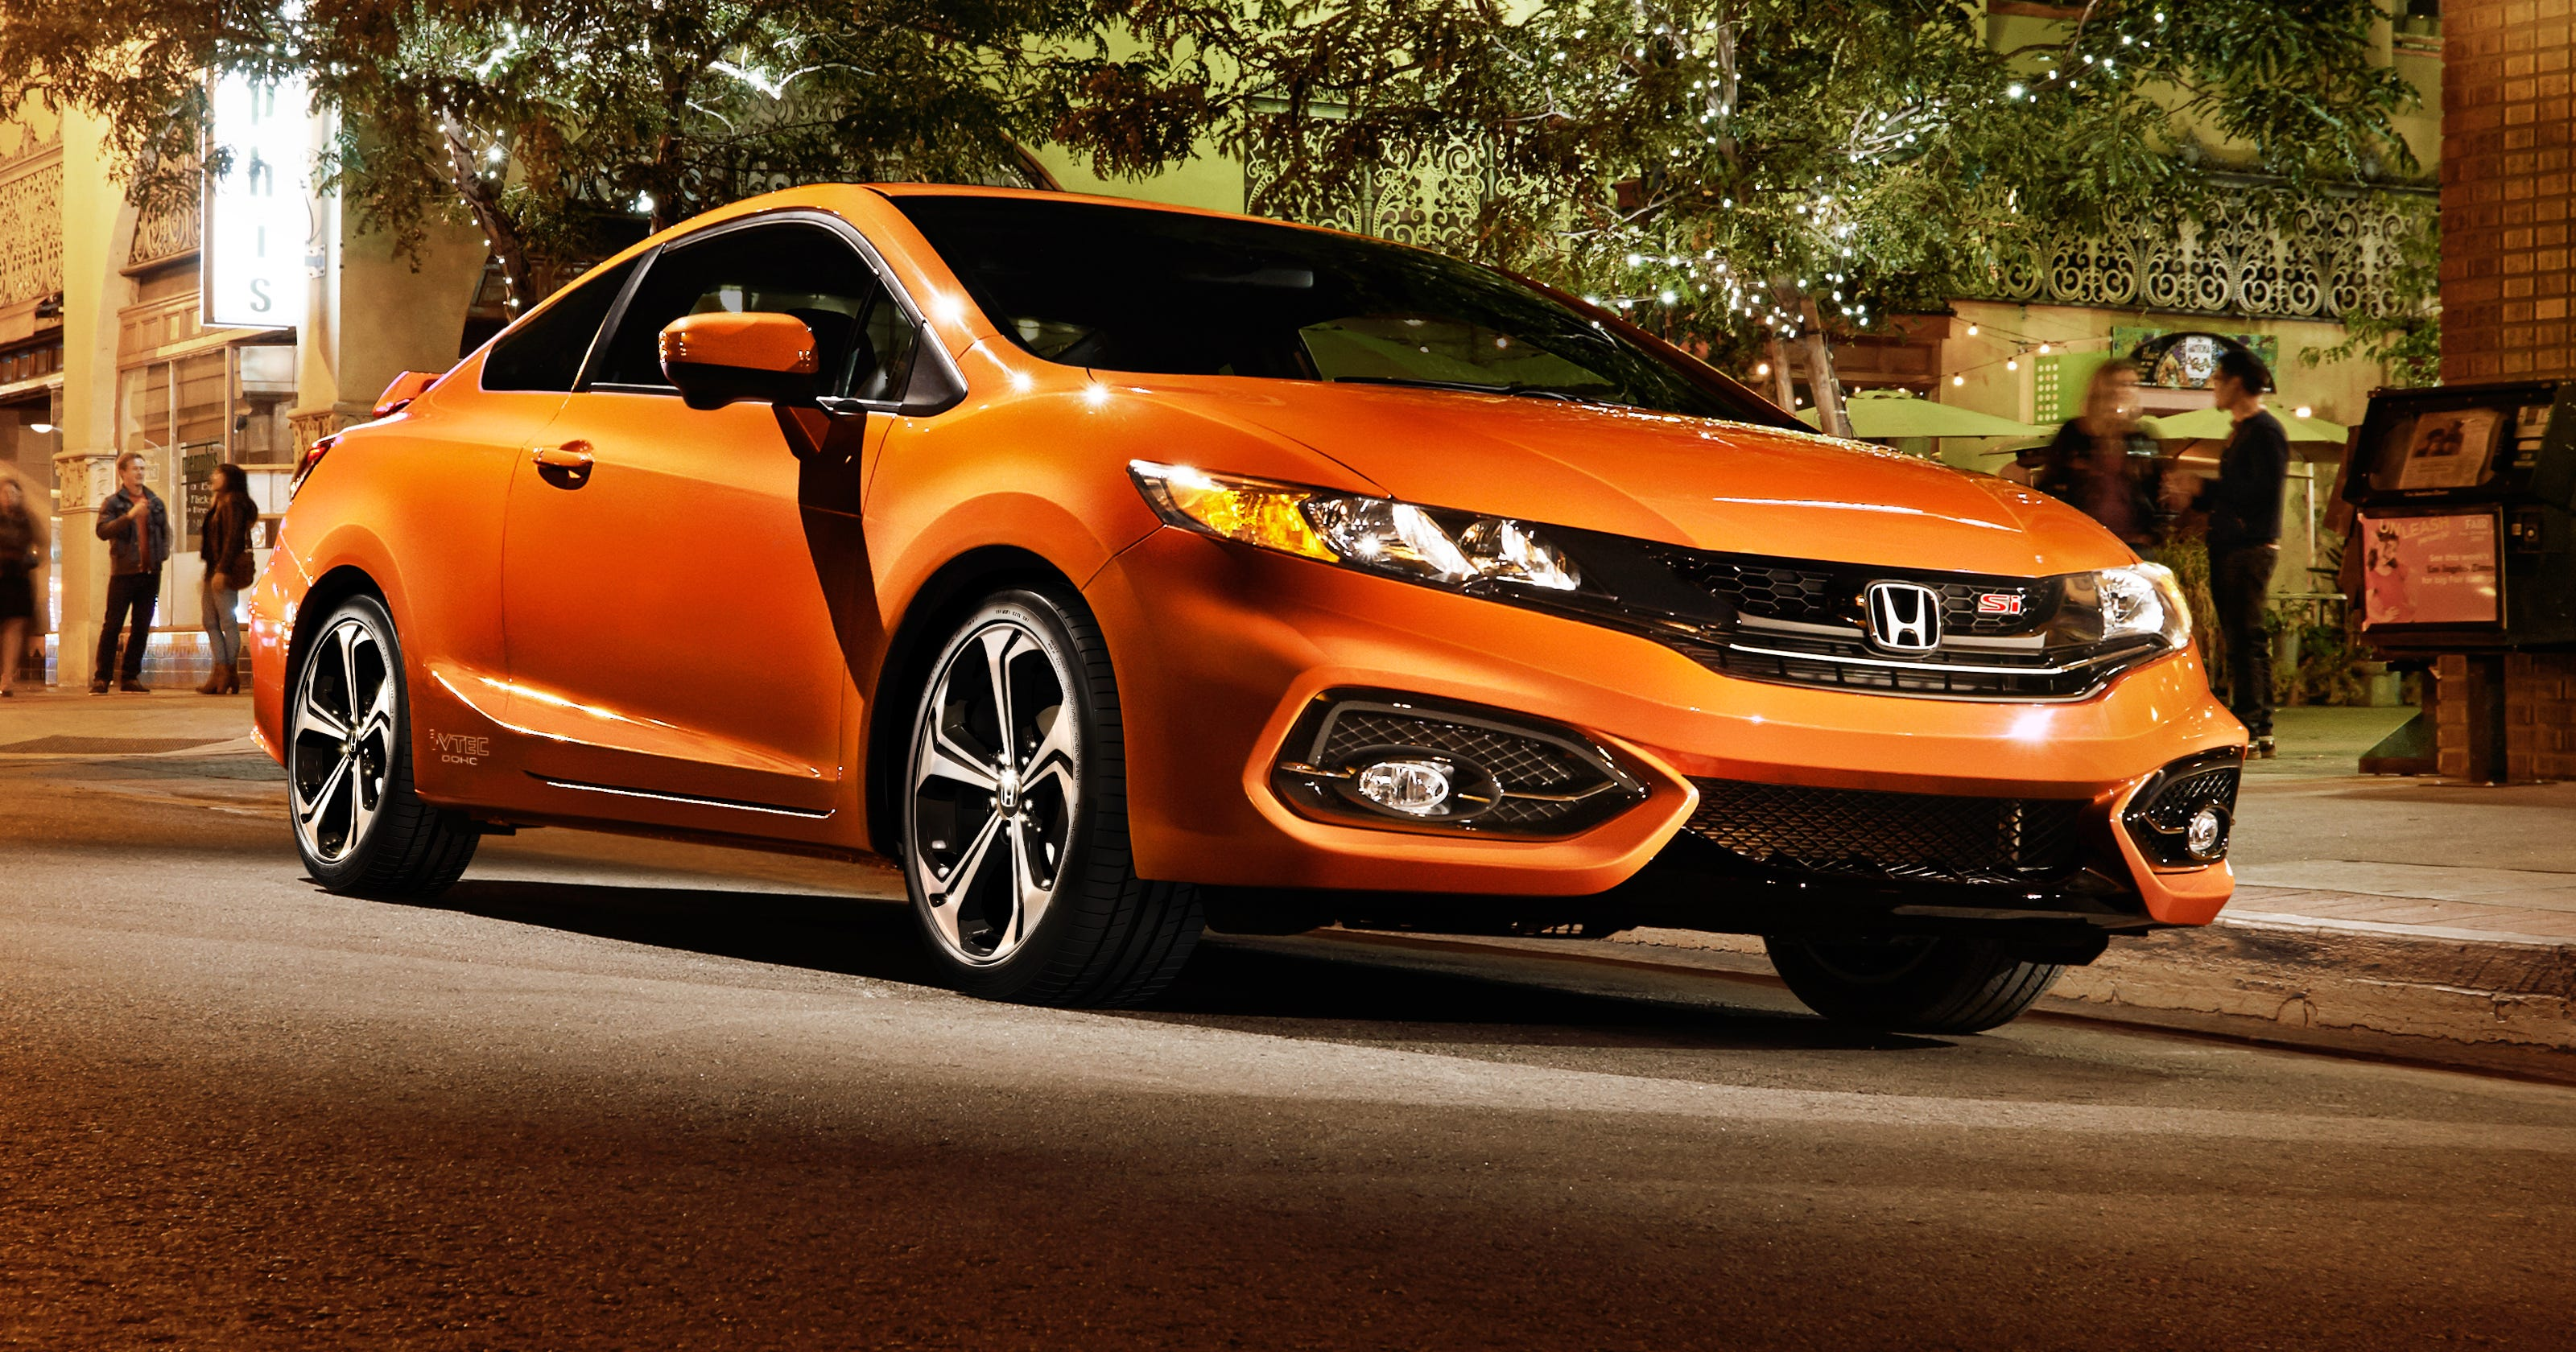 Honda Pay Bill >> Honda redesigns Civic again; this time it's the coupe